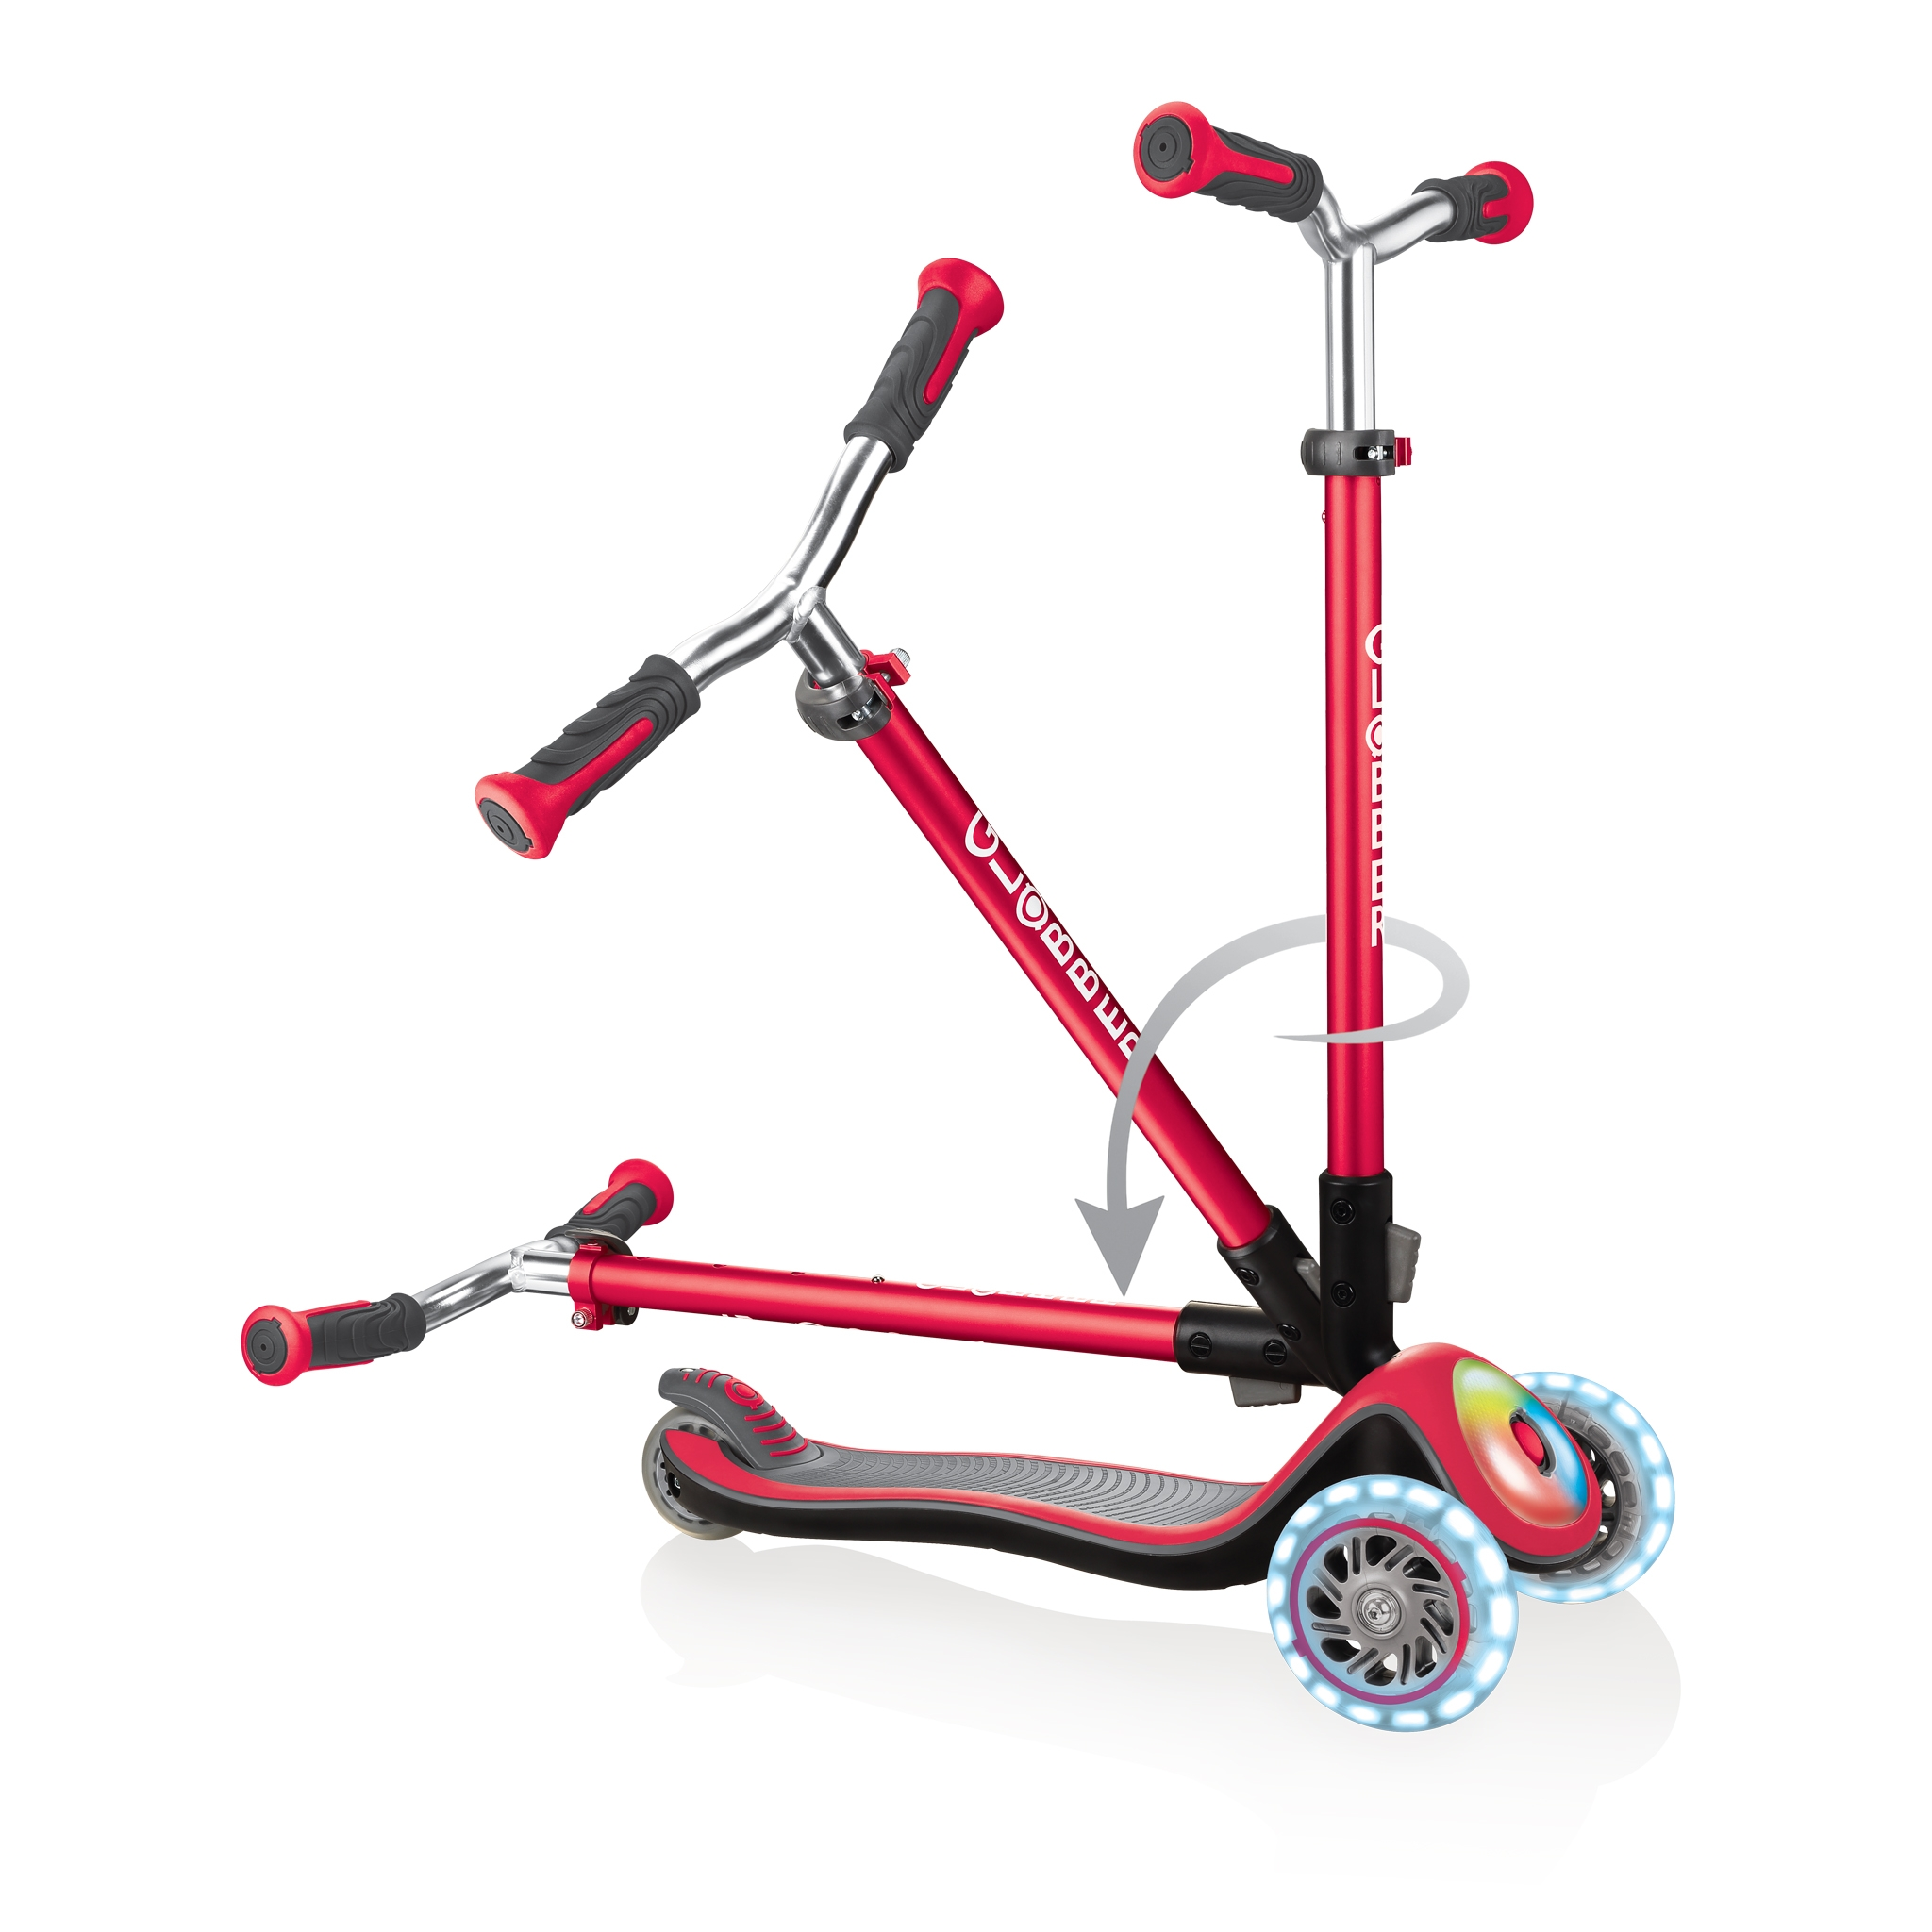 Globber-ELITE-PRIME-best-3-wheel-scooter-for-kids-with-patented-folding-system-new-red